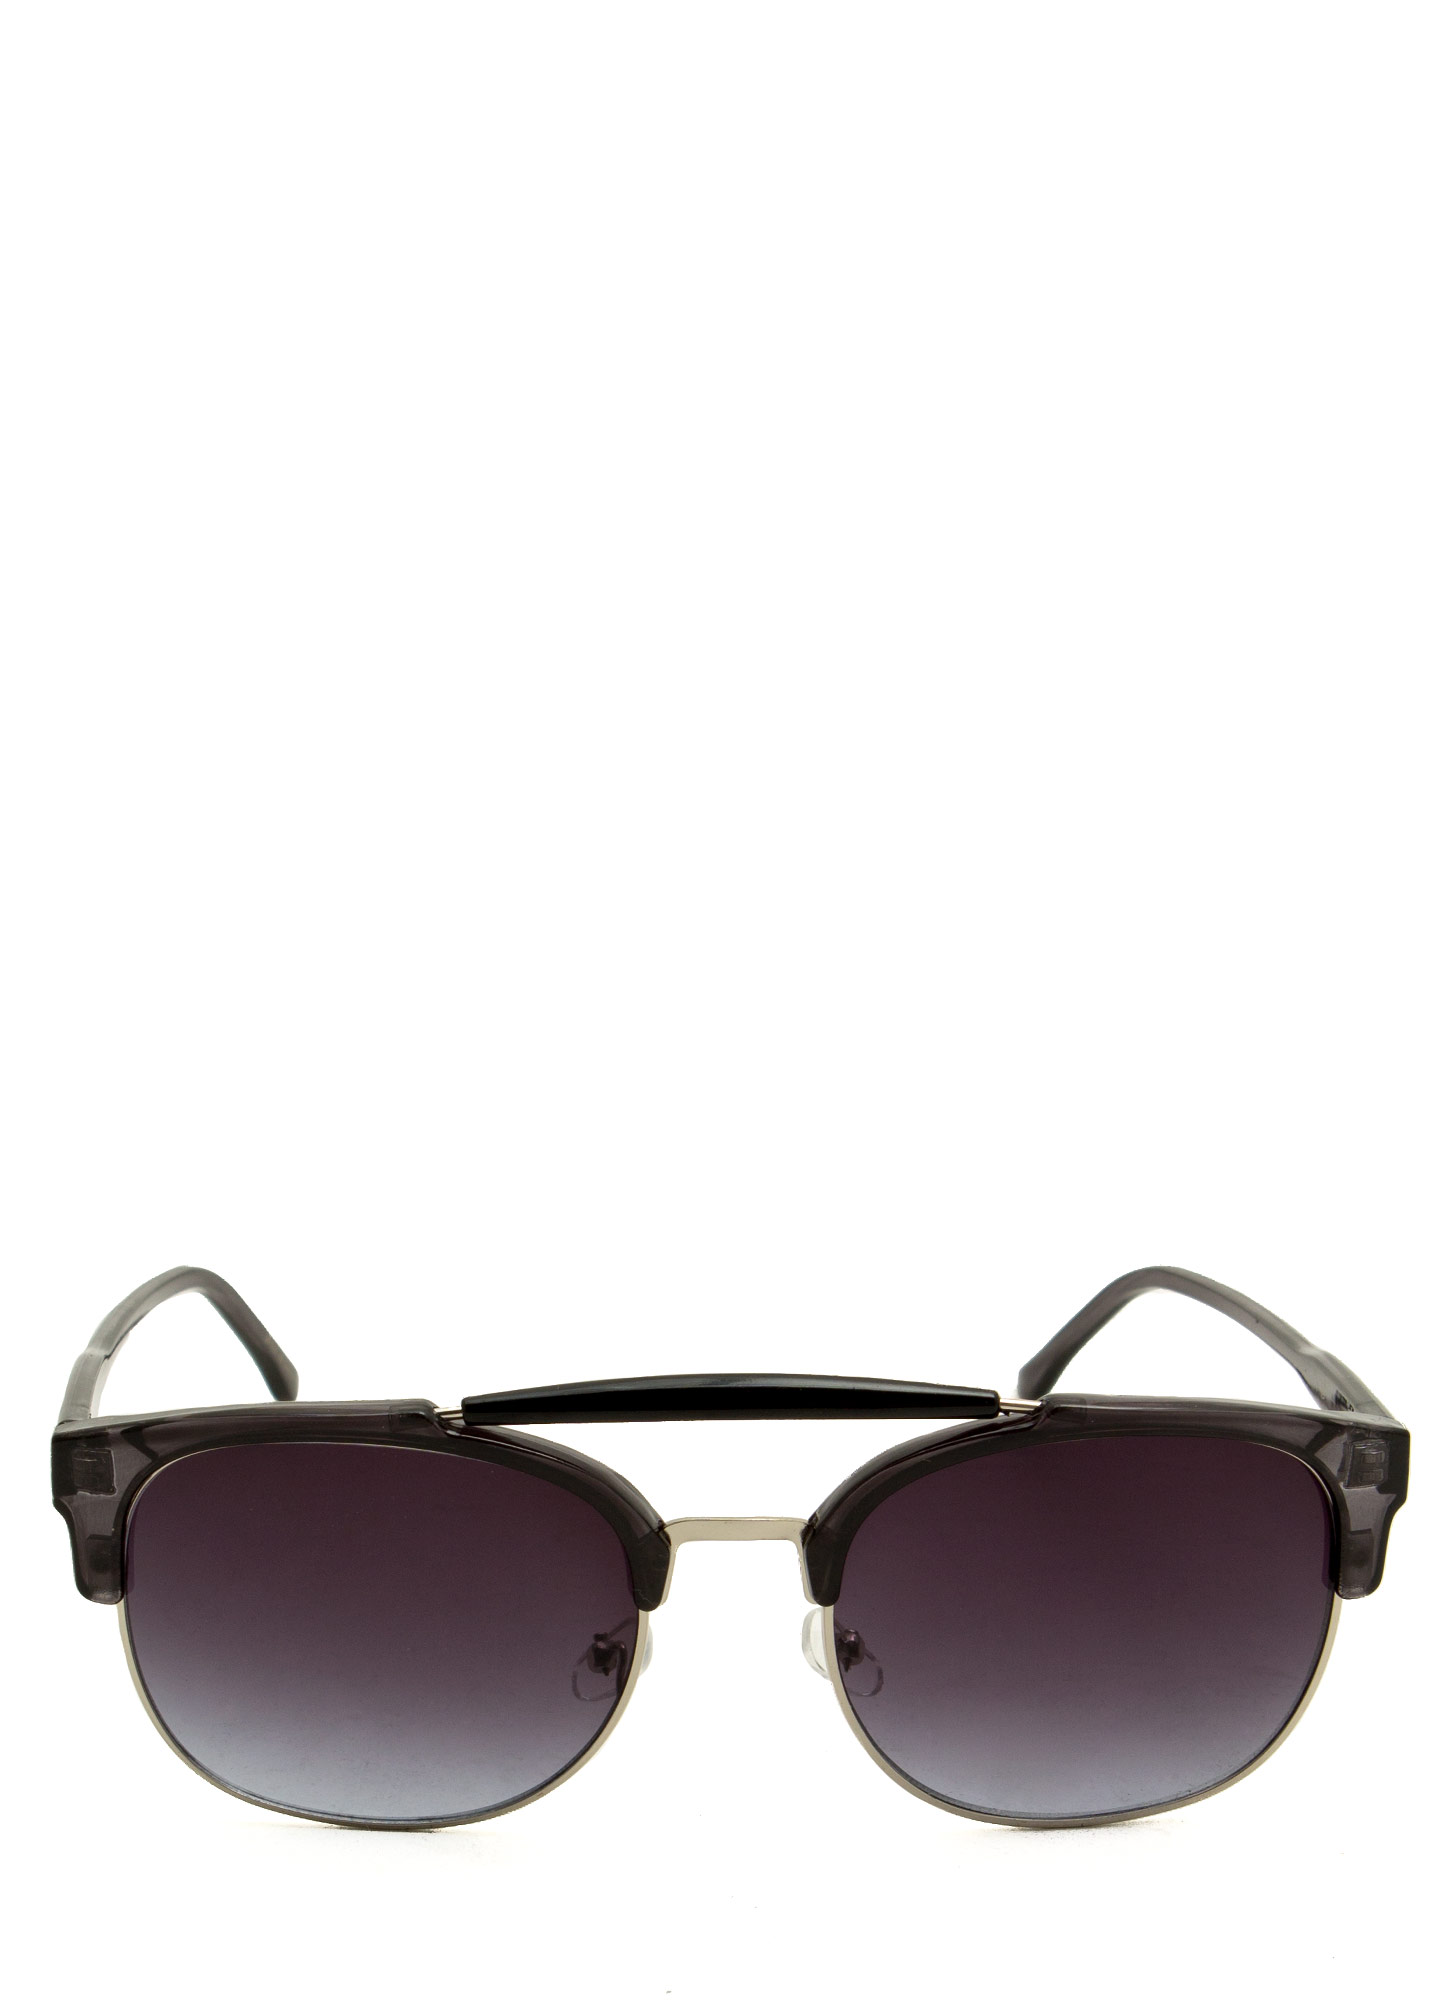 Top Bar Browline Sunglasses BLACKSILVER